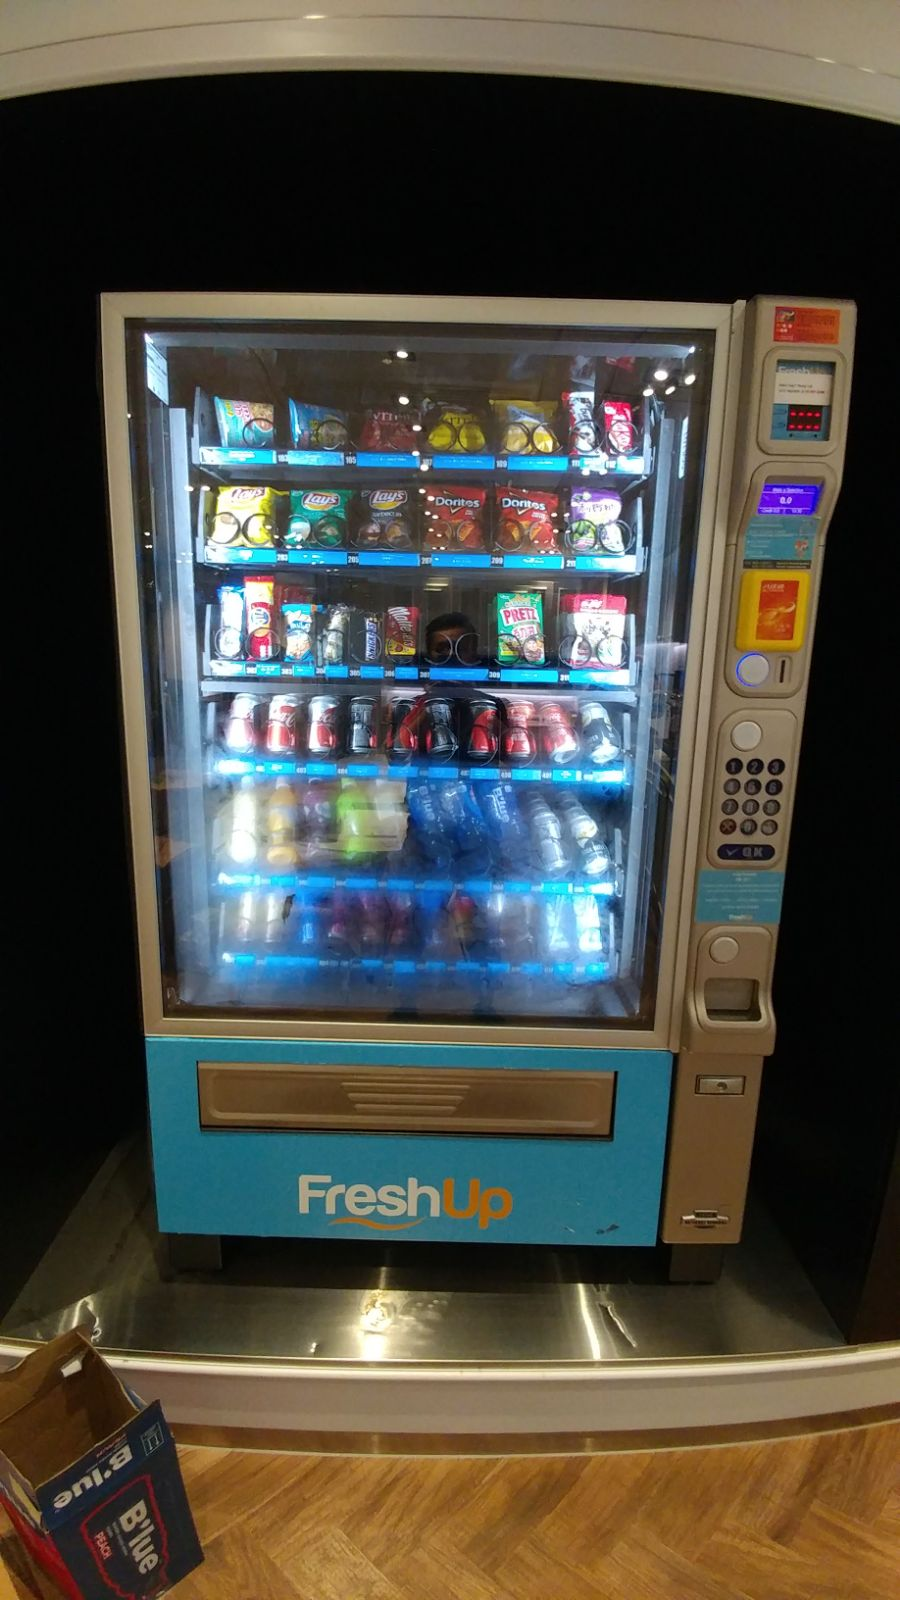 Freshup, vending machine hk, interactive, food, beverage, smart retail, convenient, vending services, professional, investment banks, UBS